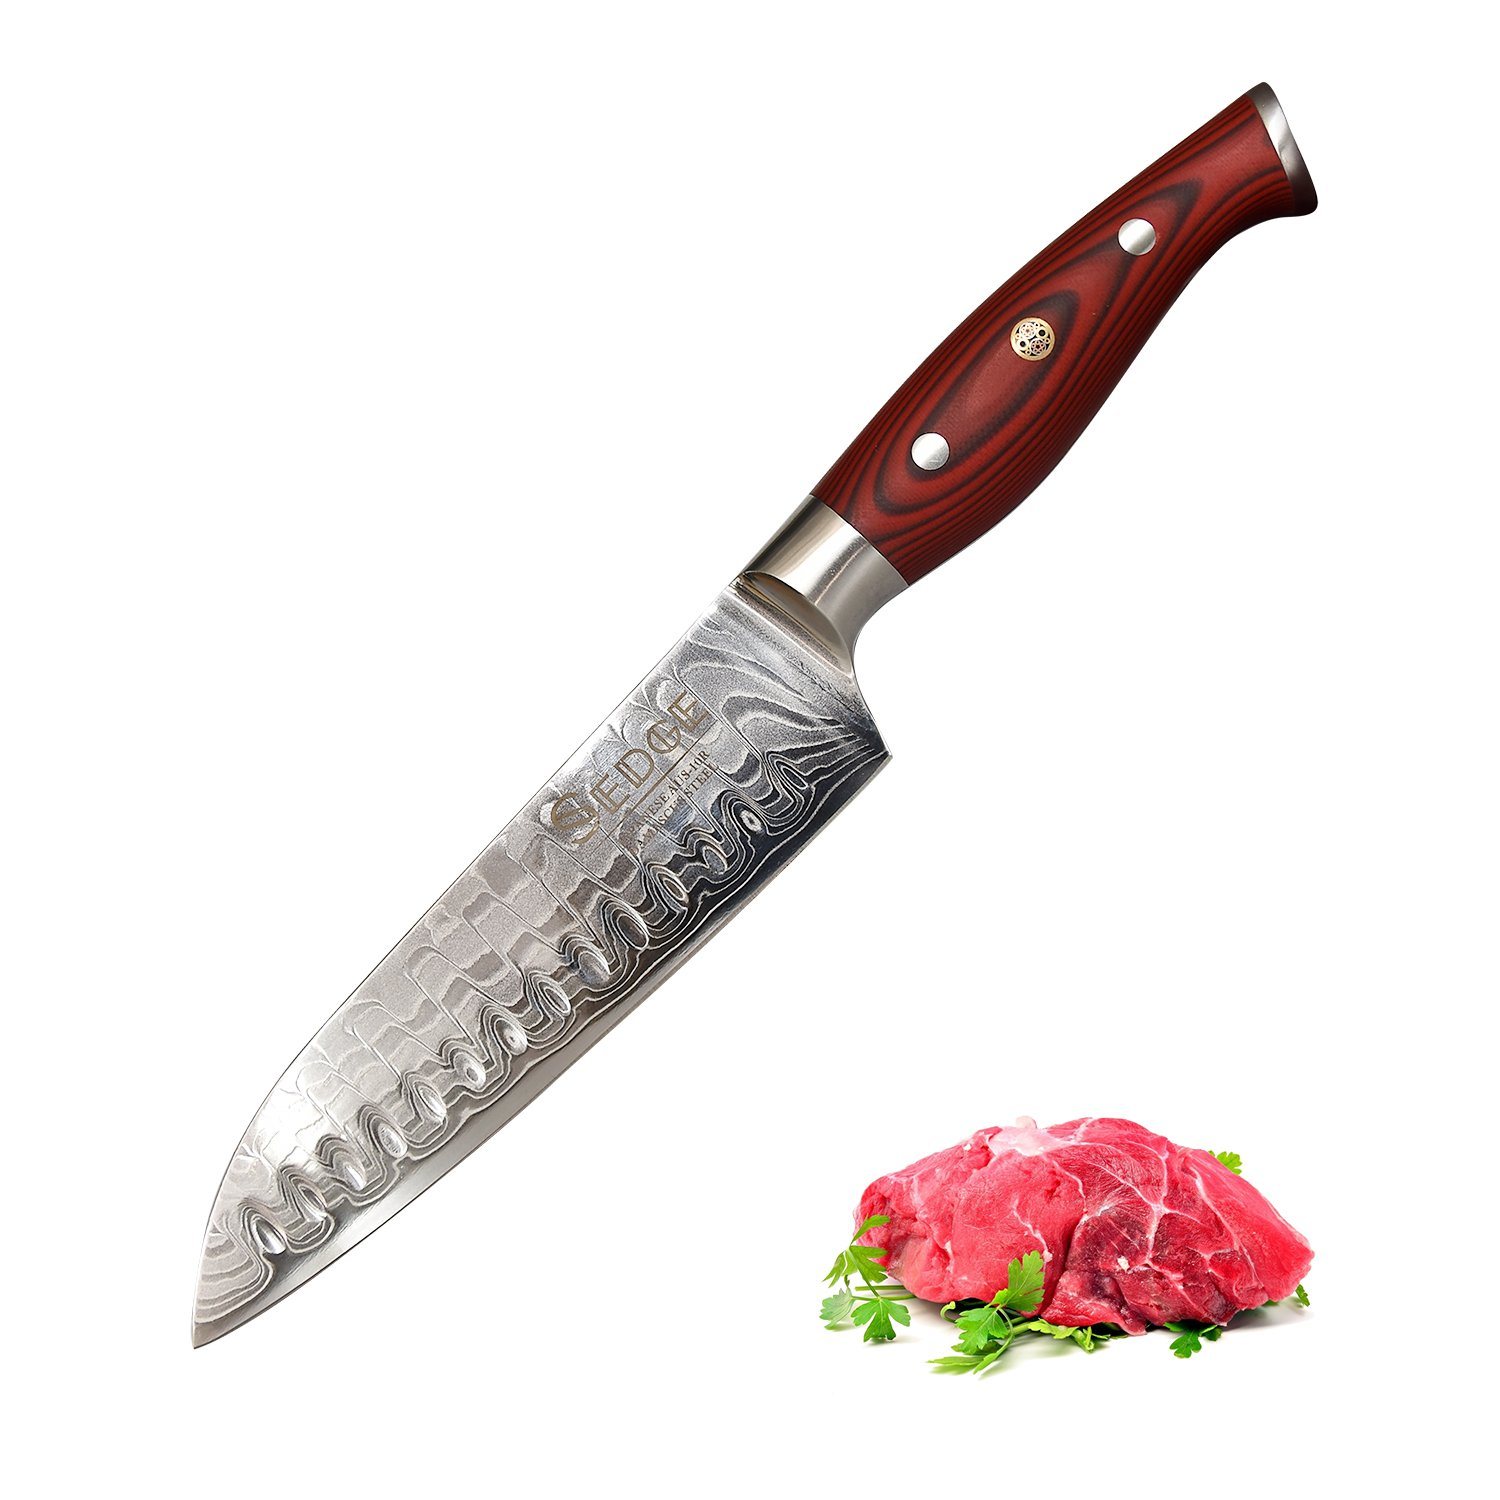 Sedge Santoku Knife With Hollow Edge 7 Inch - Japanese Damascus AUS-10V High Carbon Steel With Ergonomic G10 Handle - SD-R Series by SEDGE